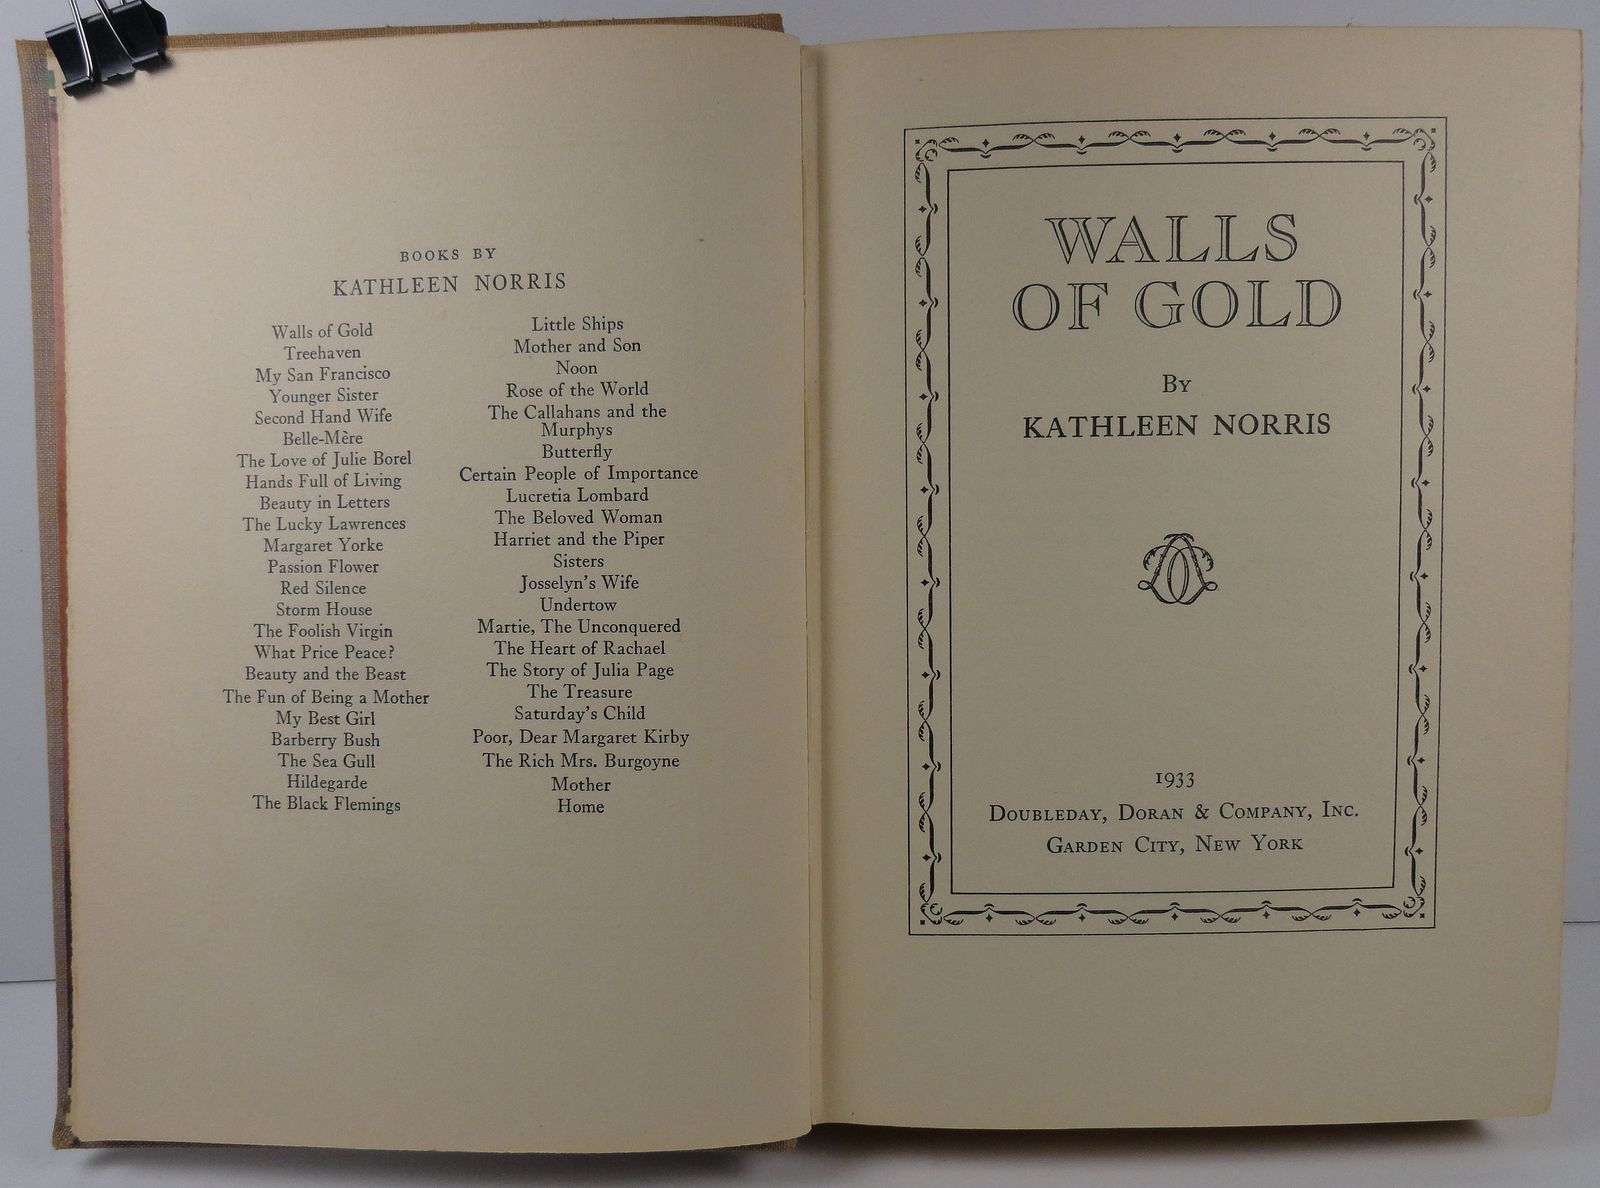 Walls of Gold by Kathleen Norris 1933 Doubleday, Doran